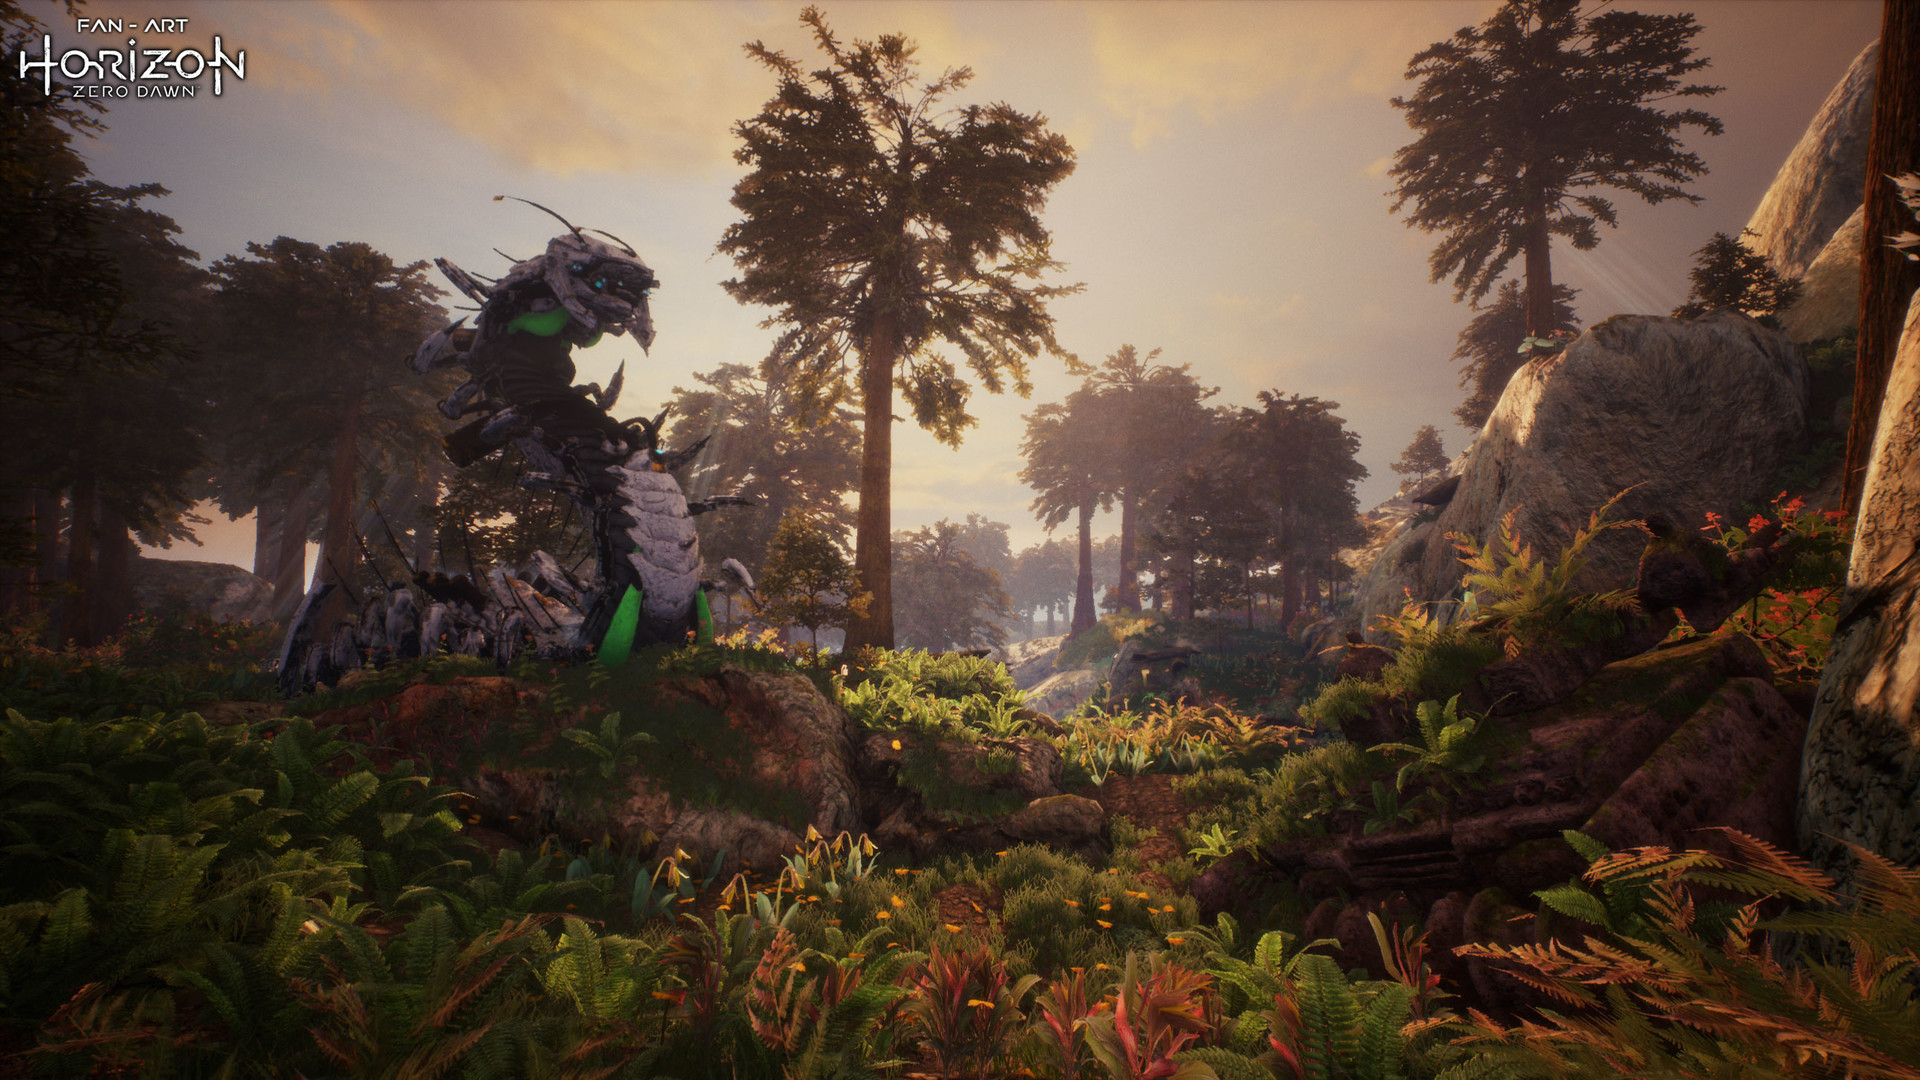 ArtStation - Horizon Zero Dawn Fan-art Environment with